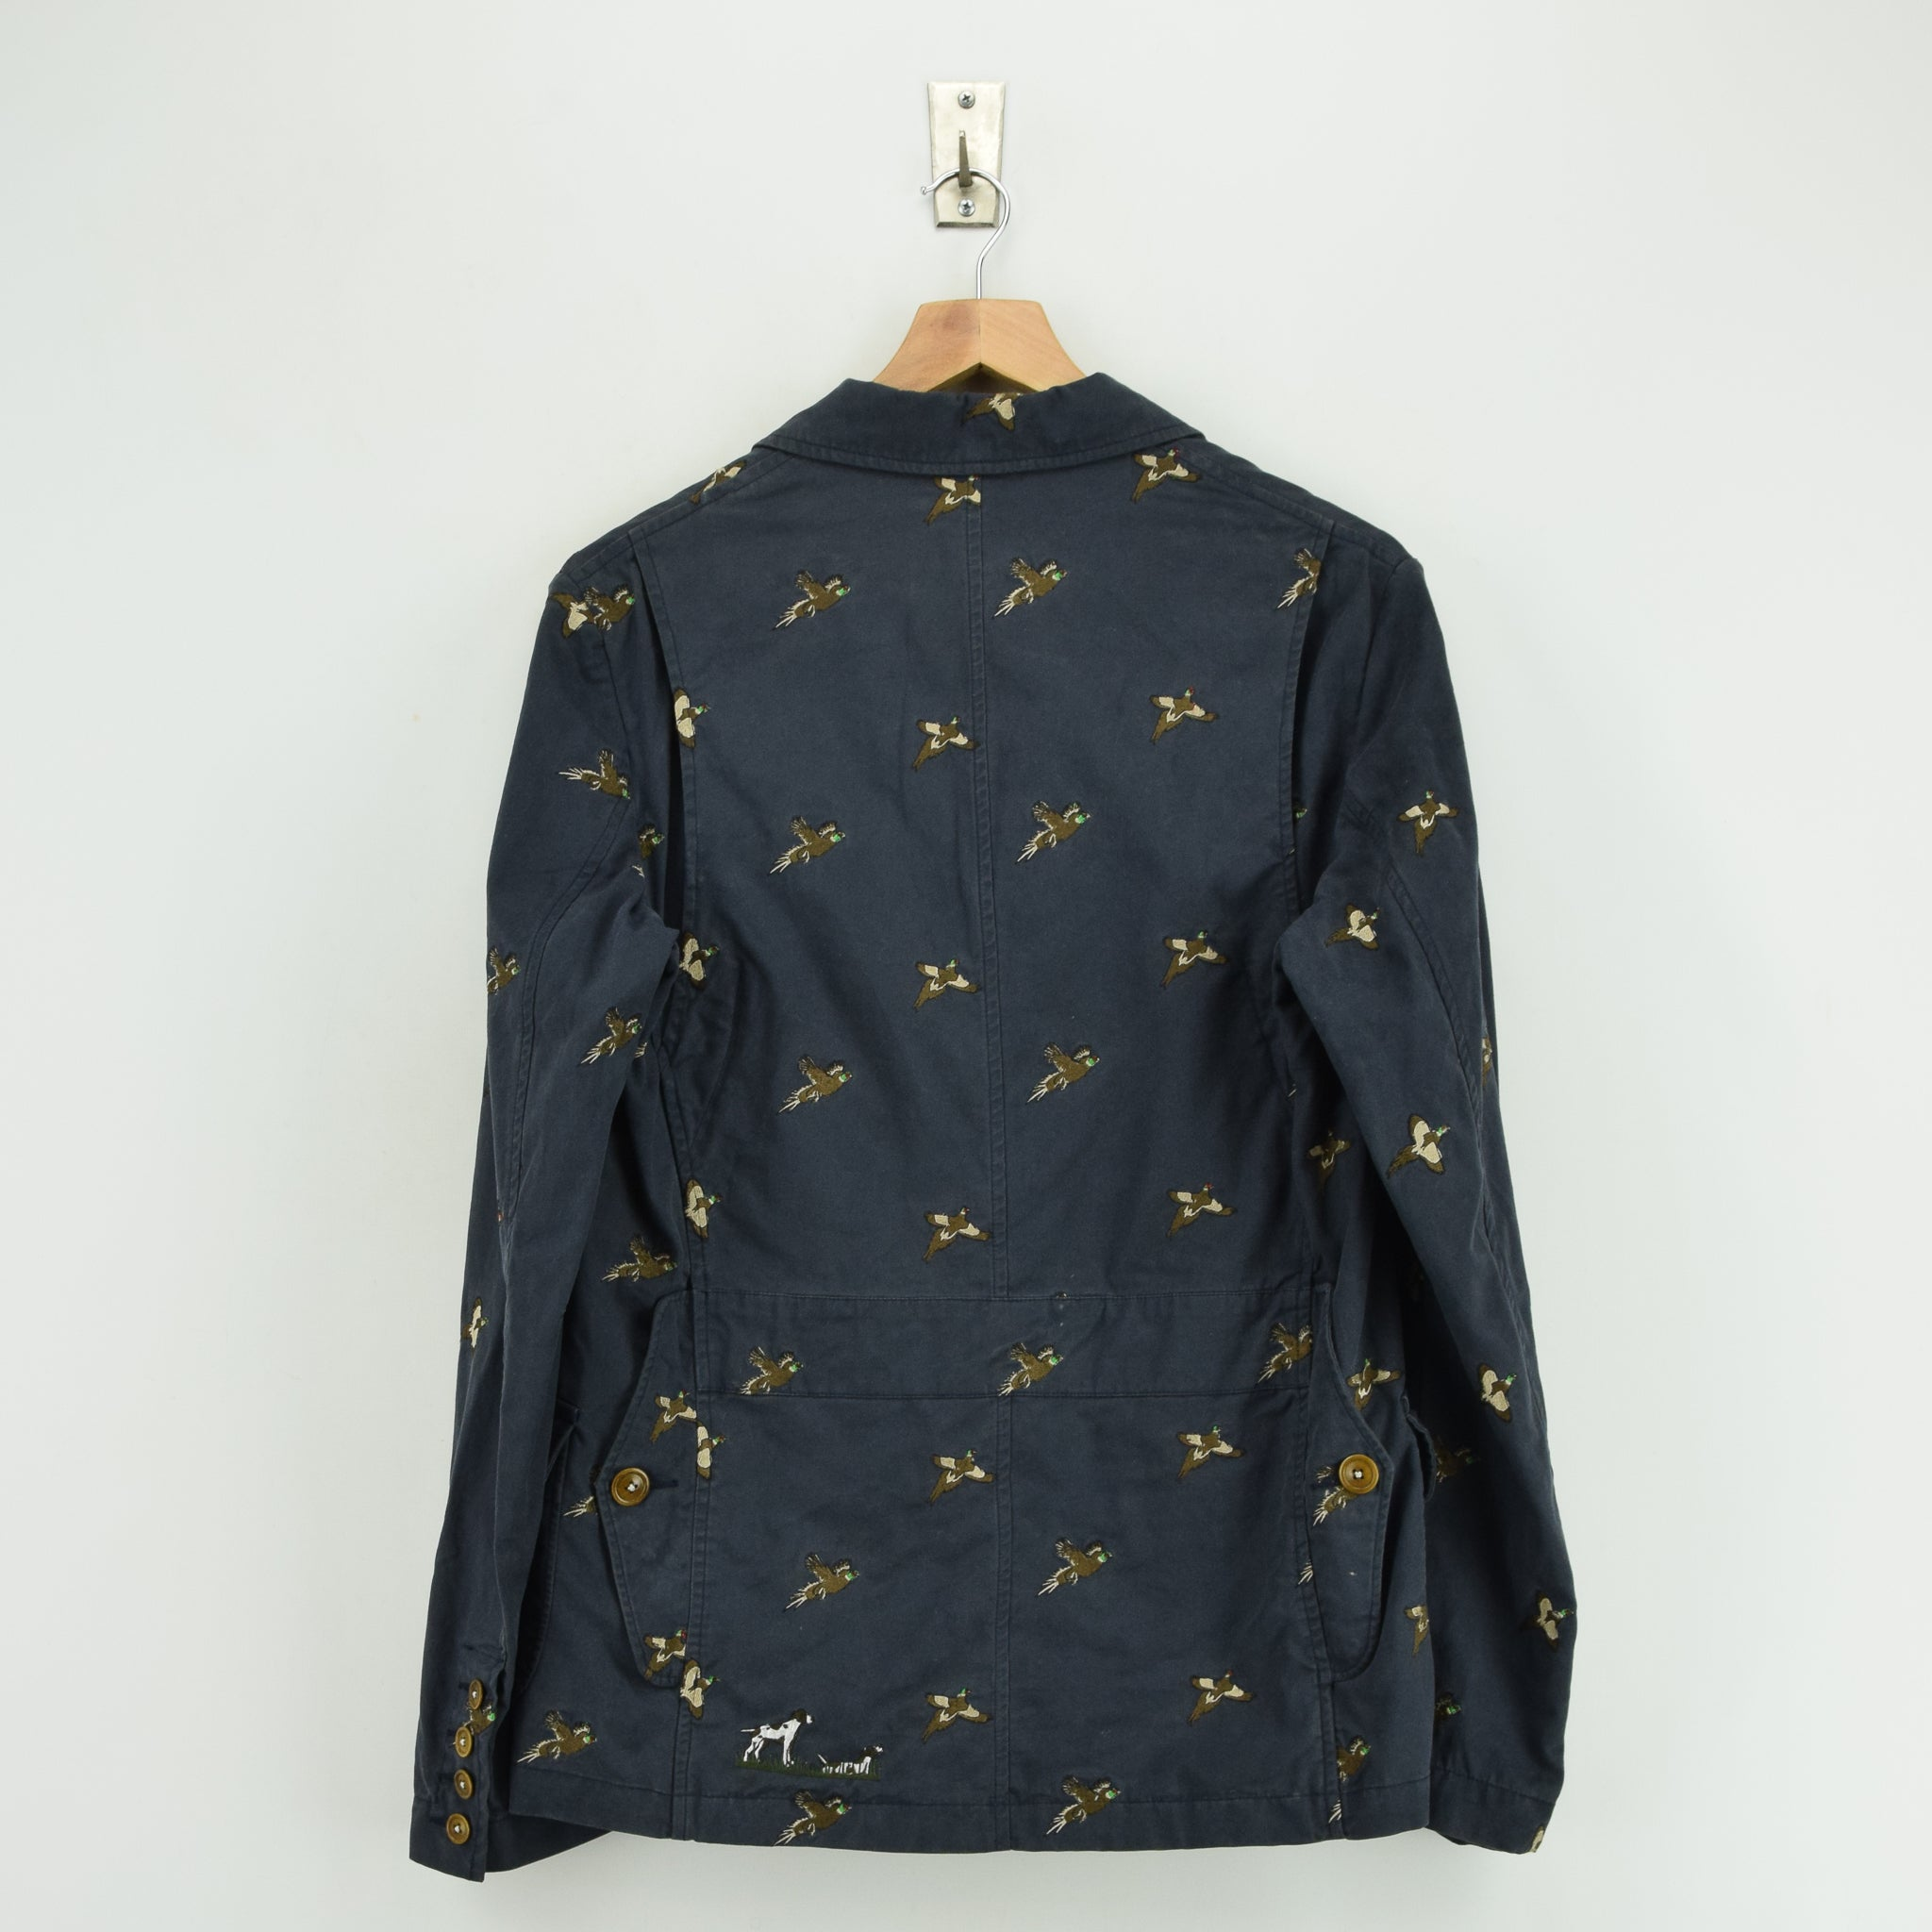 Barbour Navy Blue Cotton Blazer Jacket With Duck Print S back